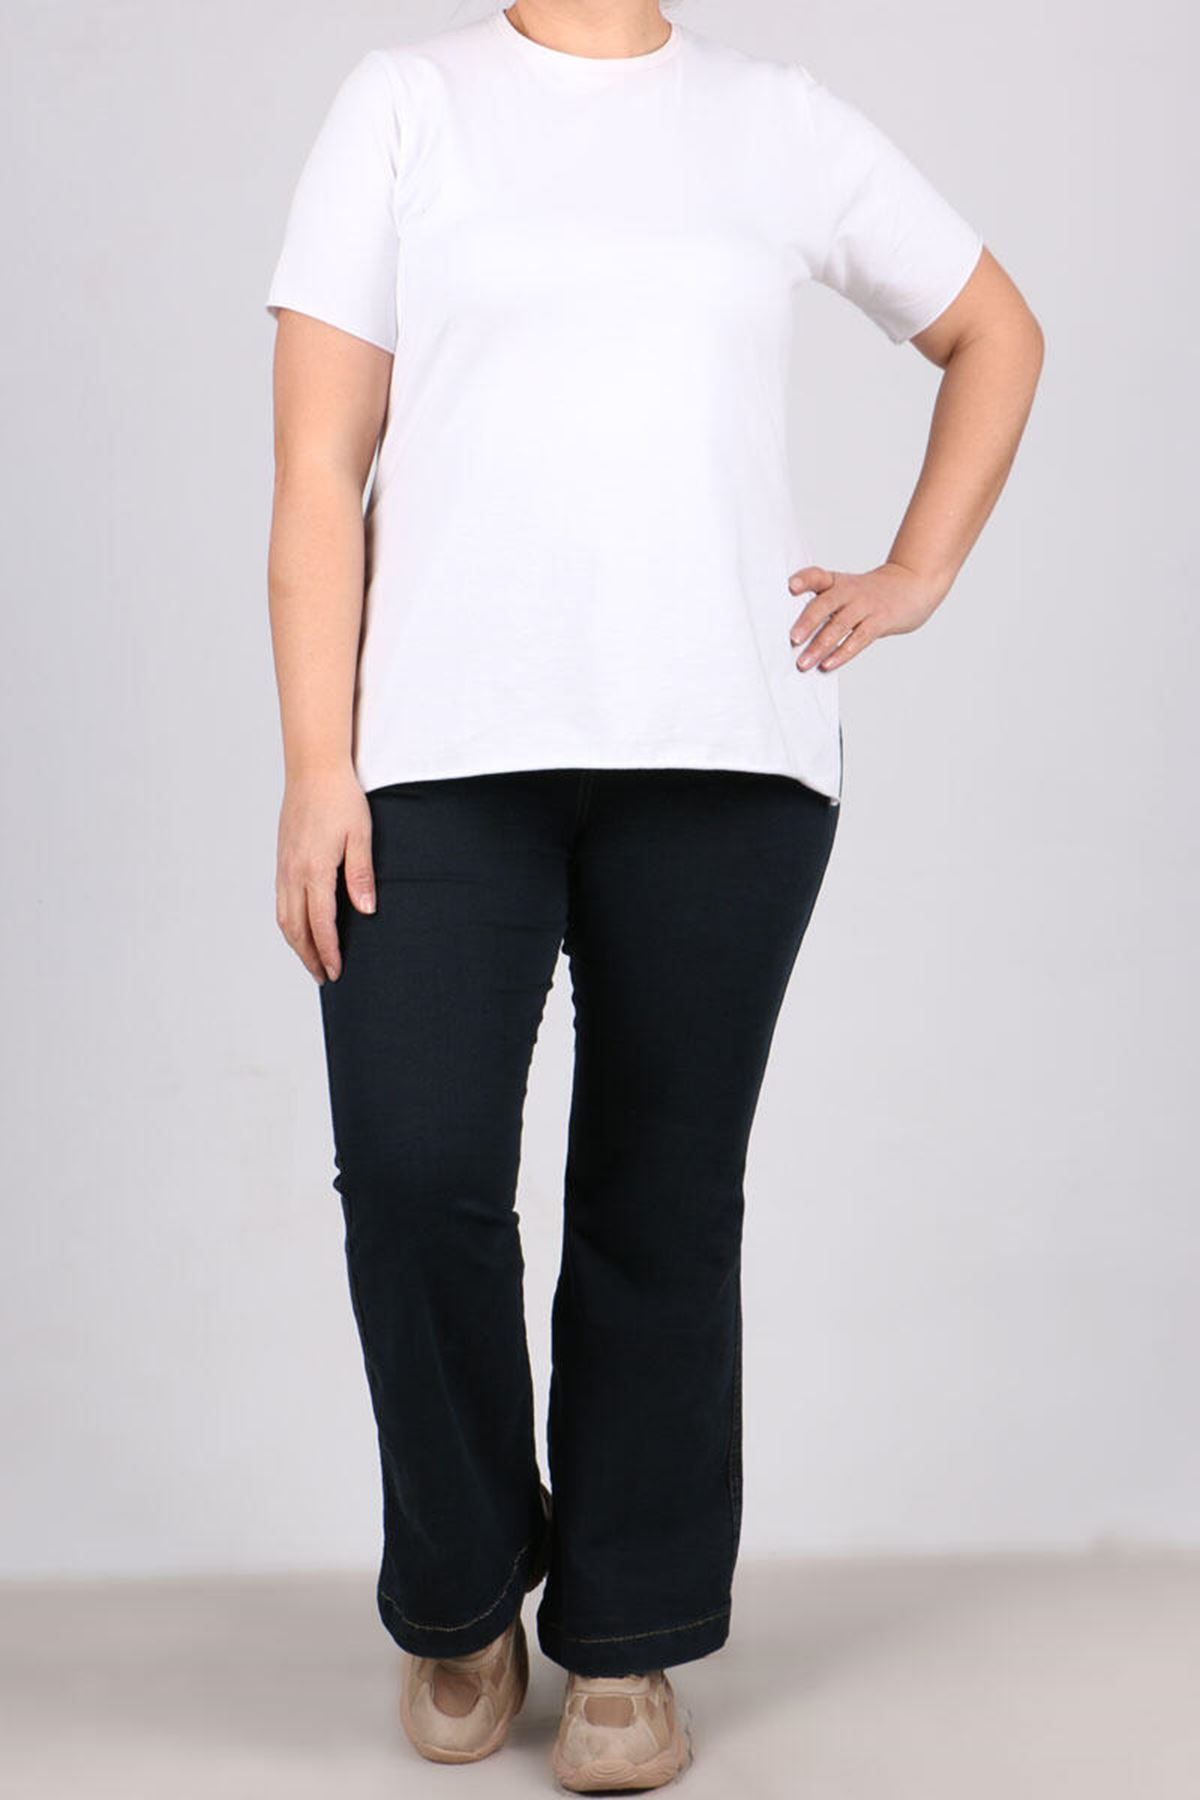 9110 Plus Size Flared Jeans - Black